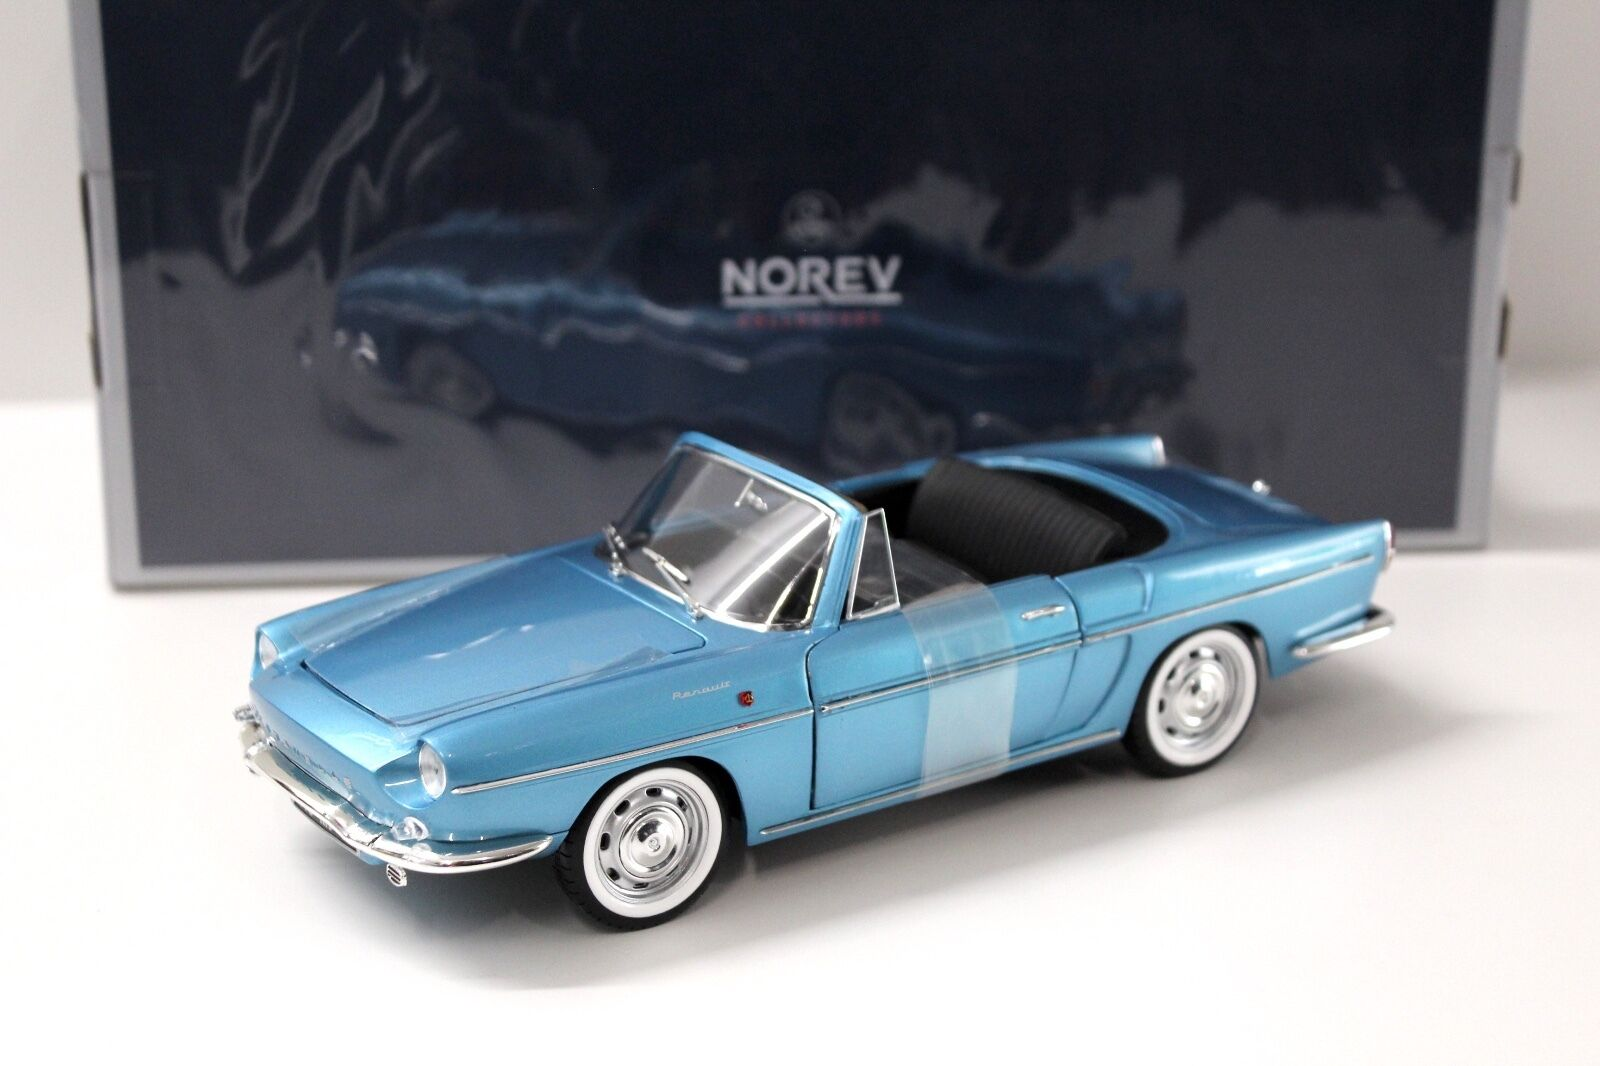 1 18 Norev Renault Caravelle Cabriolet 1964 bluee NEW in Premium-modelcars